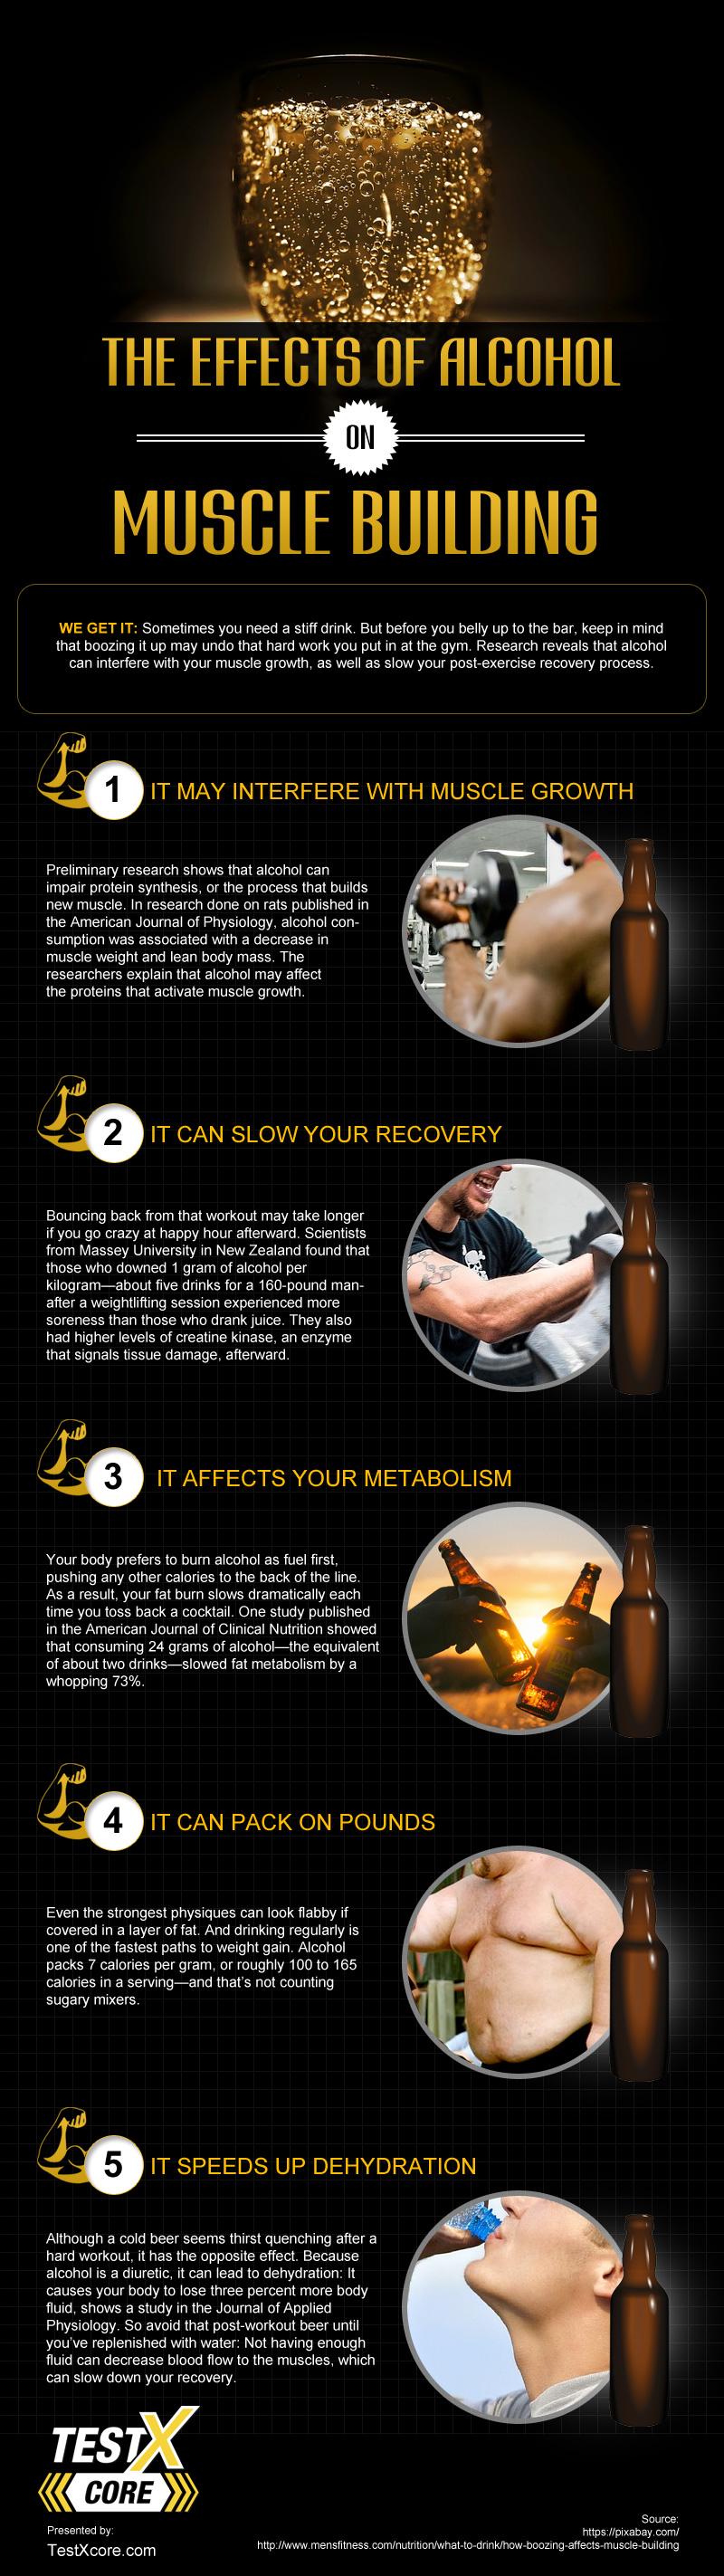 The Effects of Alcohol on Muscle Building